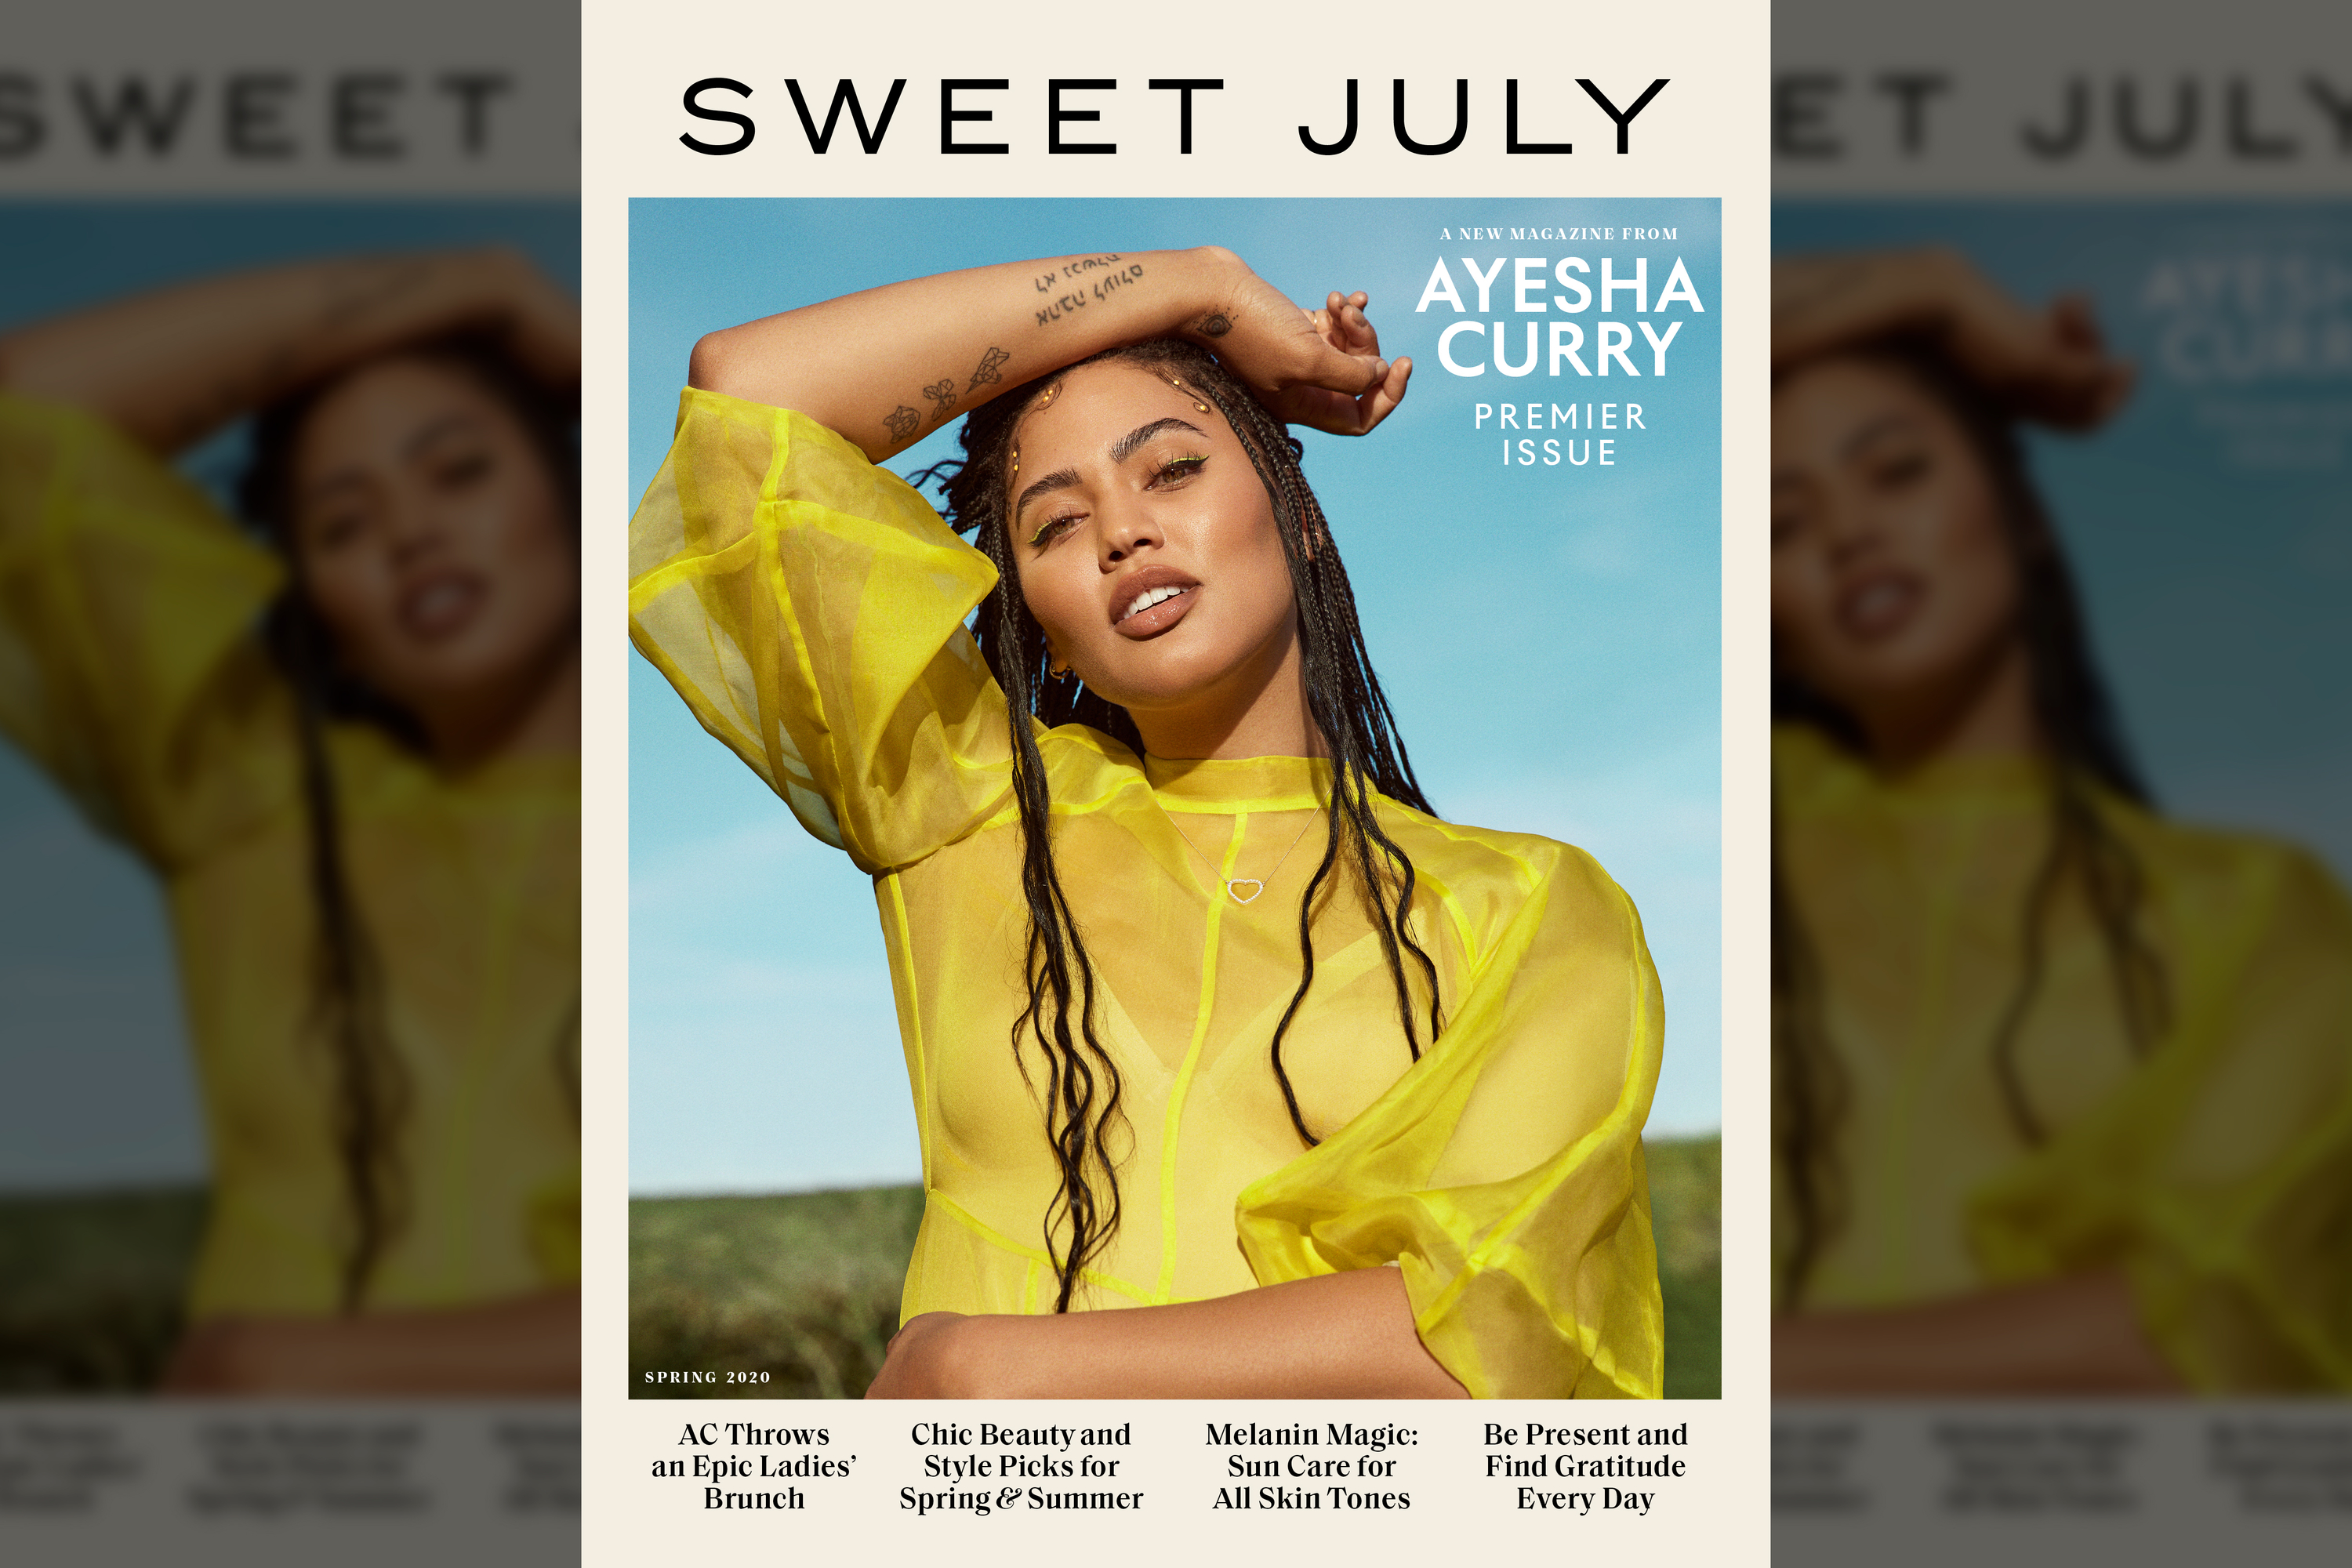 Meredith launches a new magazine, Sweet July, with Ayesha Curry